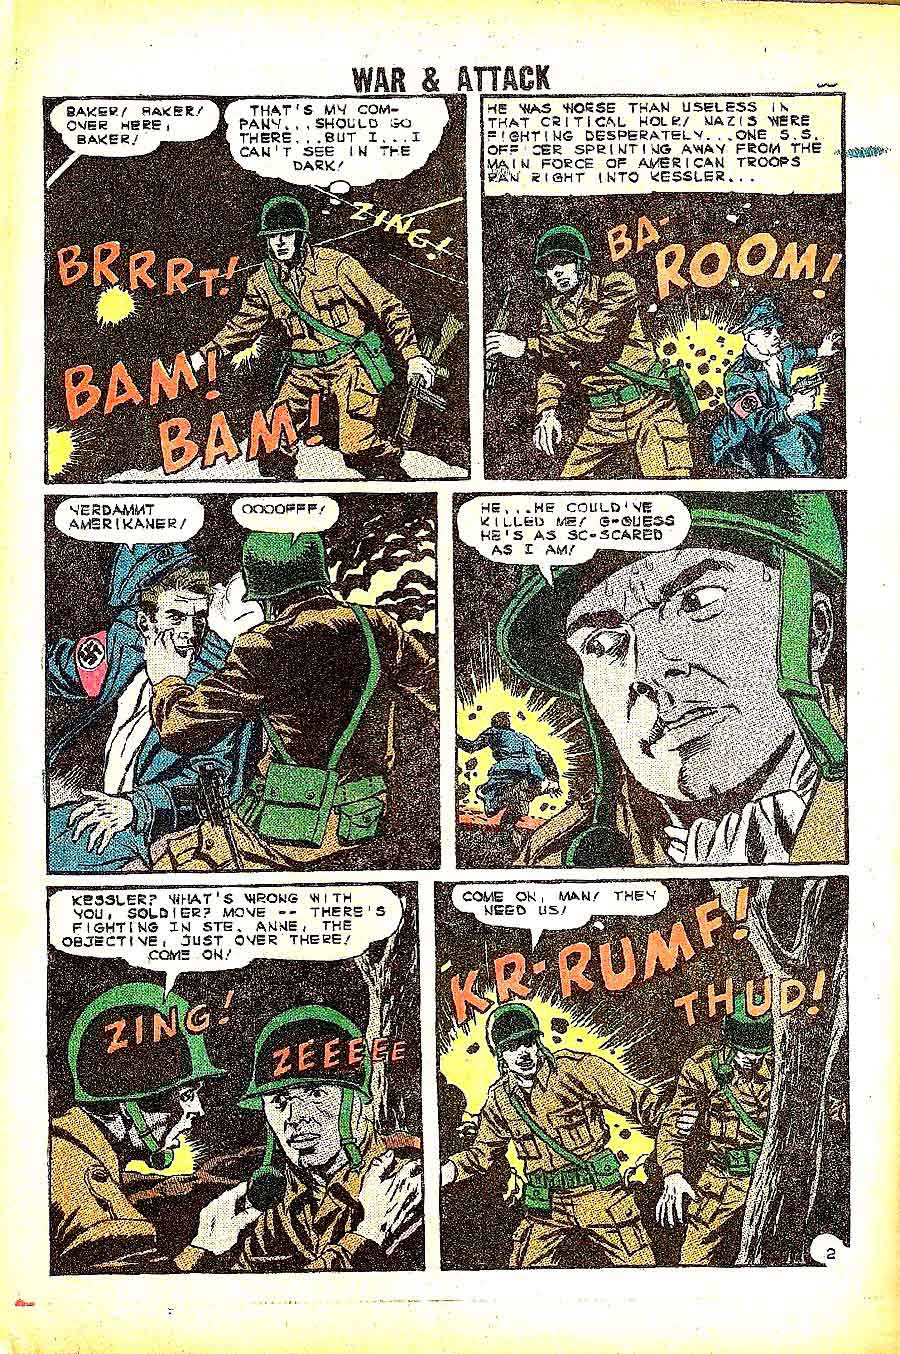 War and Attack v1 #1 charlton war silver age 1960s comic book page art by Wally Wood